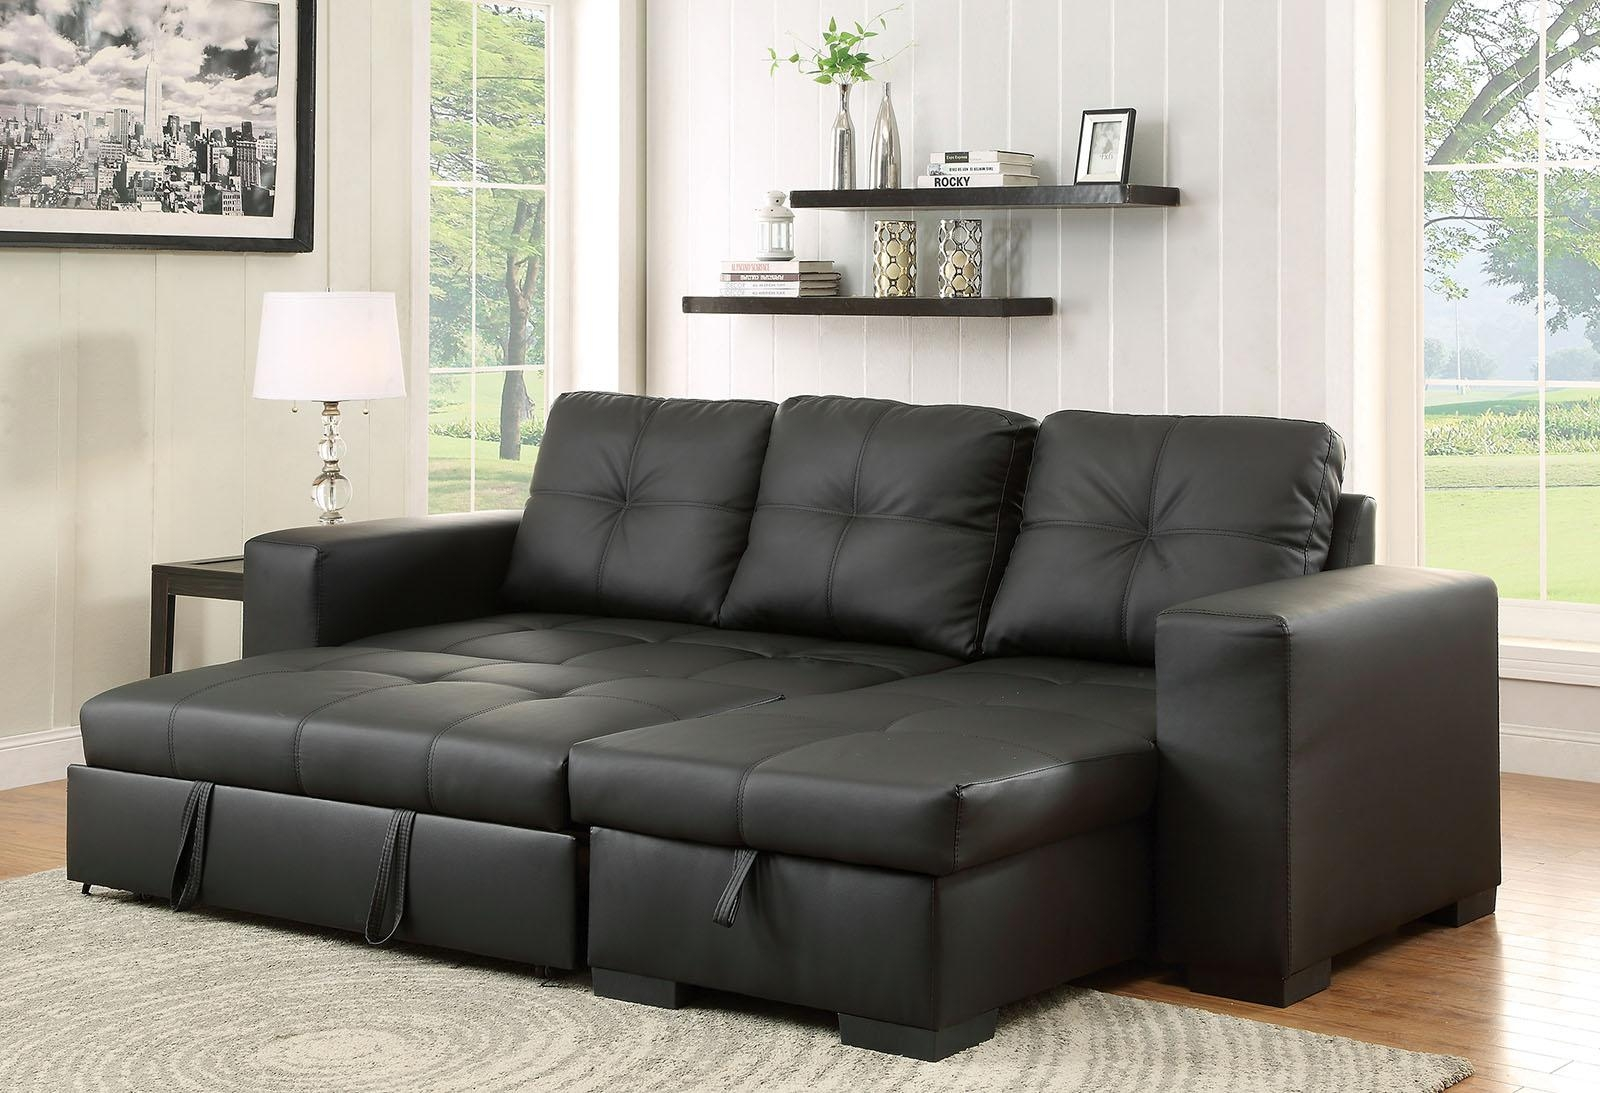 Denton Contemporary Style Black Leatherette Sofa Sectional W/ Pull With Pull Out Sectional (View 19 of 20)